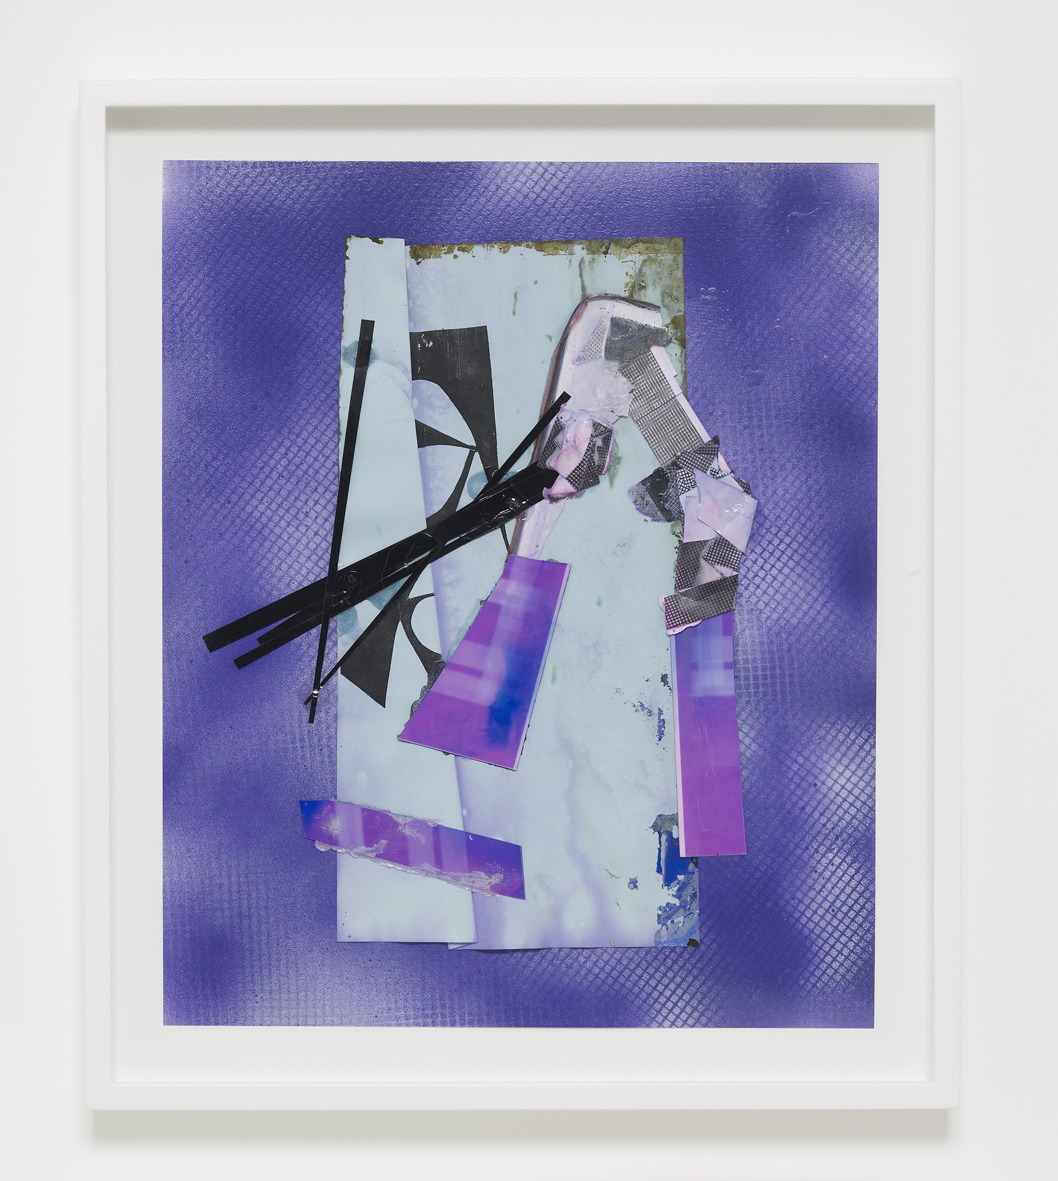 Josh Brand  Untitled  2018  Mixed media, enamel paint, dyed photograms and photocopies  51 x 43 x 4.4 cm / 20 x 16.9 x 1.7 in framed